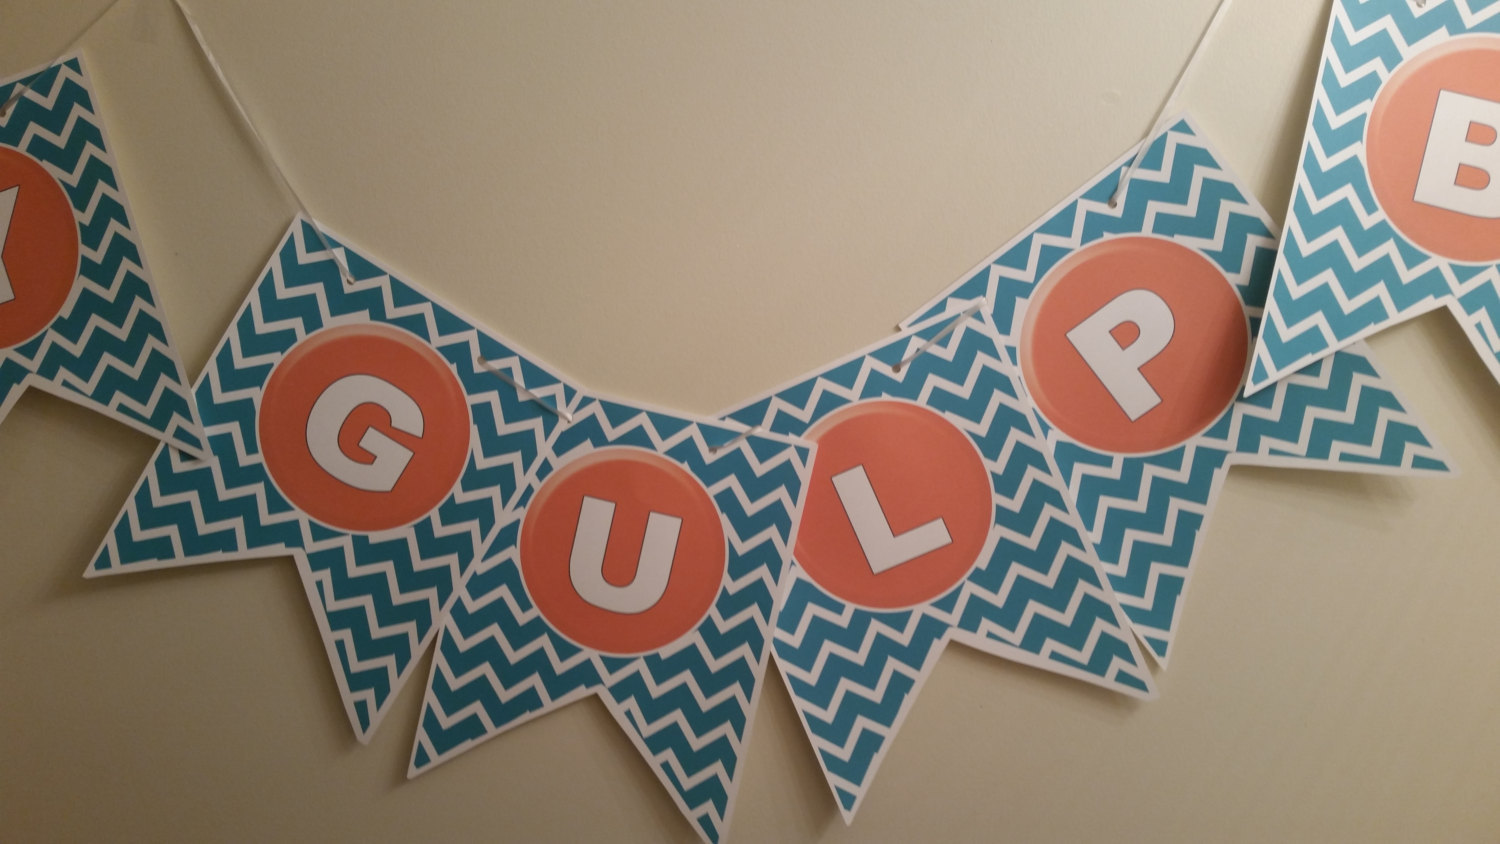 Guppy Gulp bar banner is perfect for your Bubble Guppie birthday party